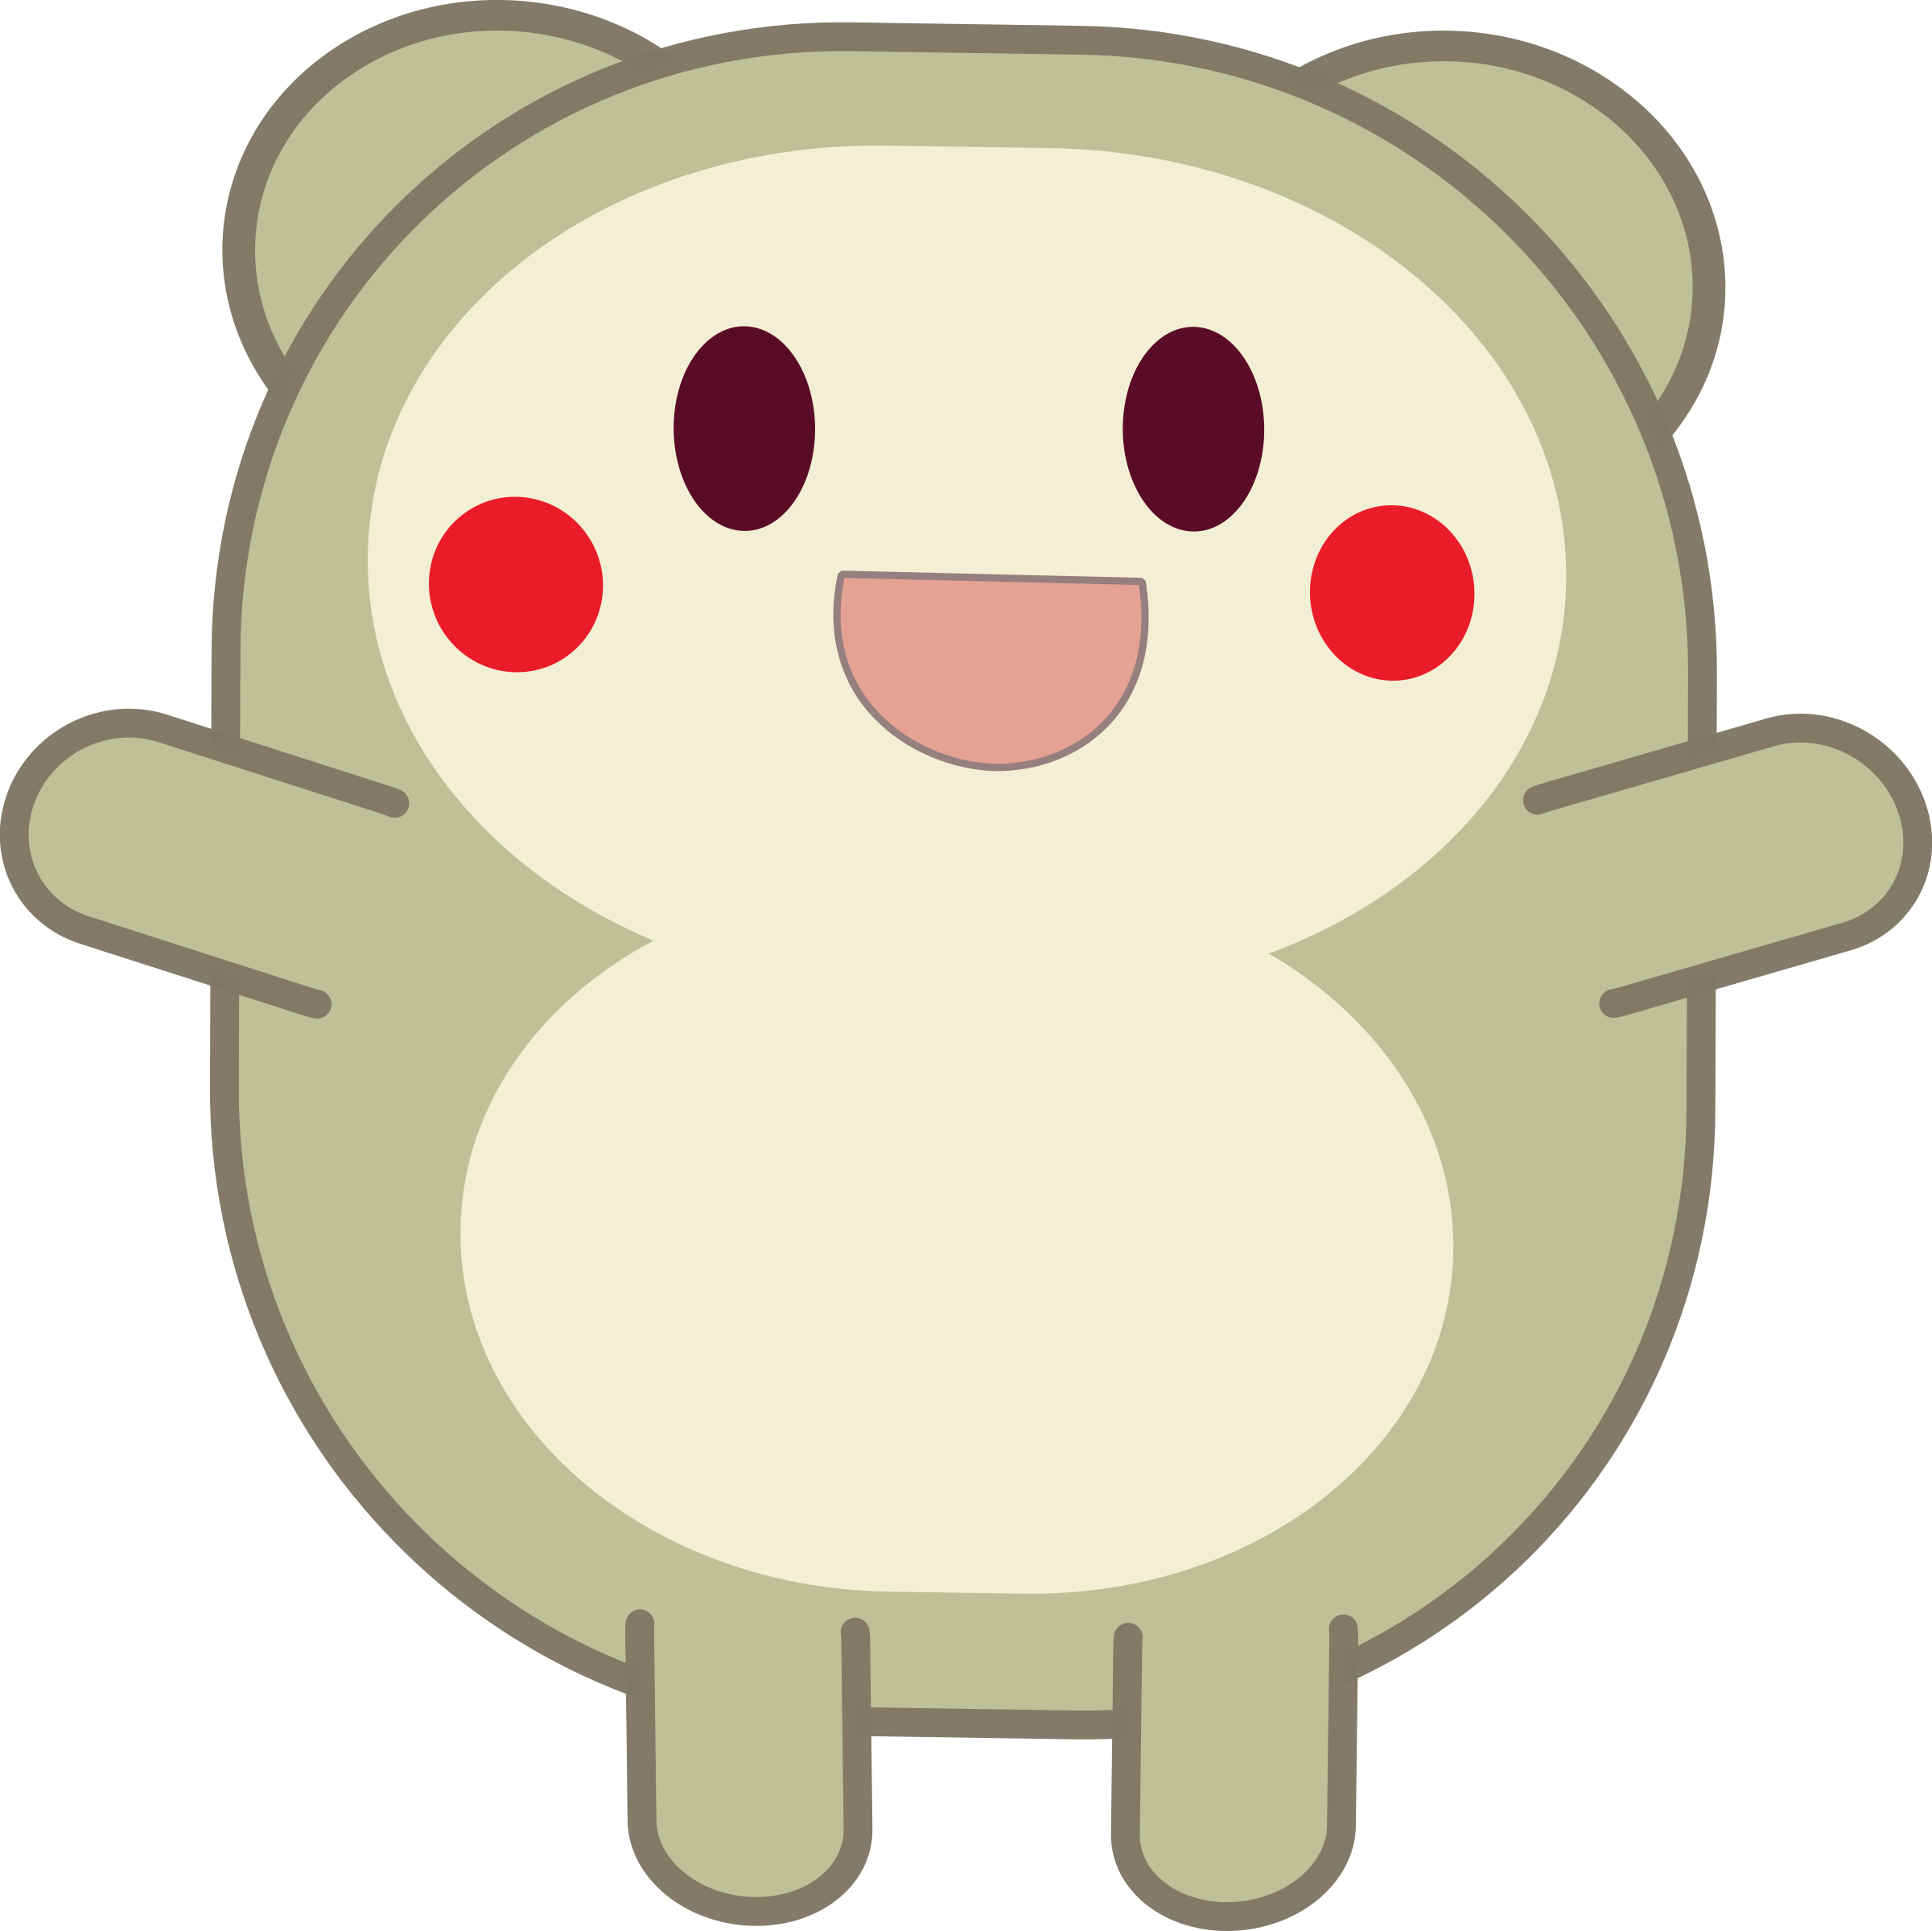 PNG Png Cute - 71321